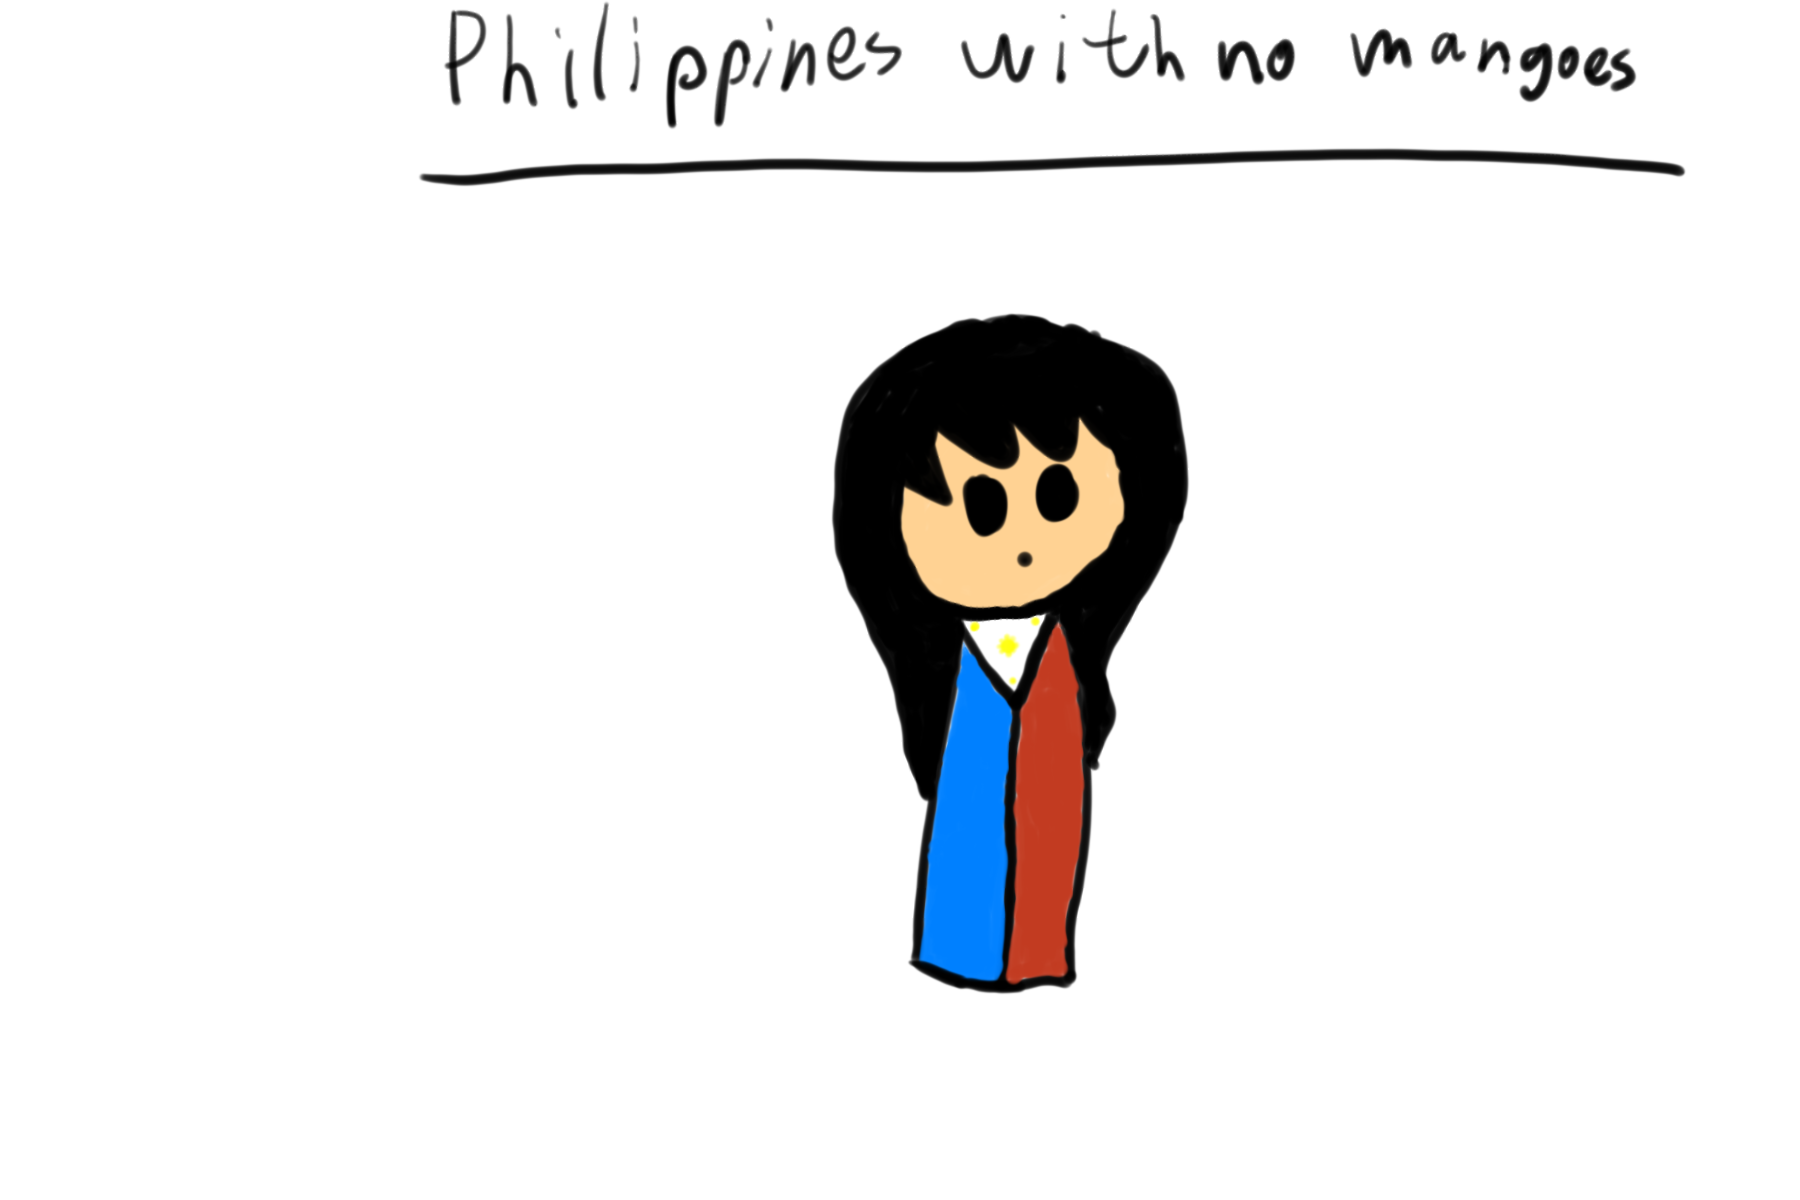 When Philippines has no Mangoes satwcomic.com